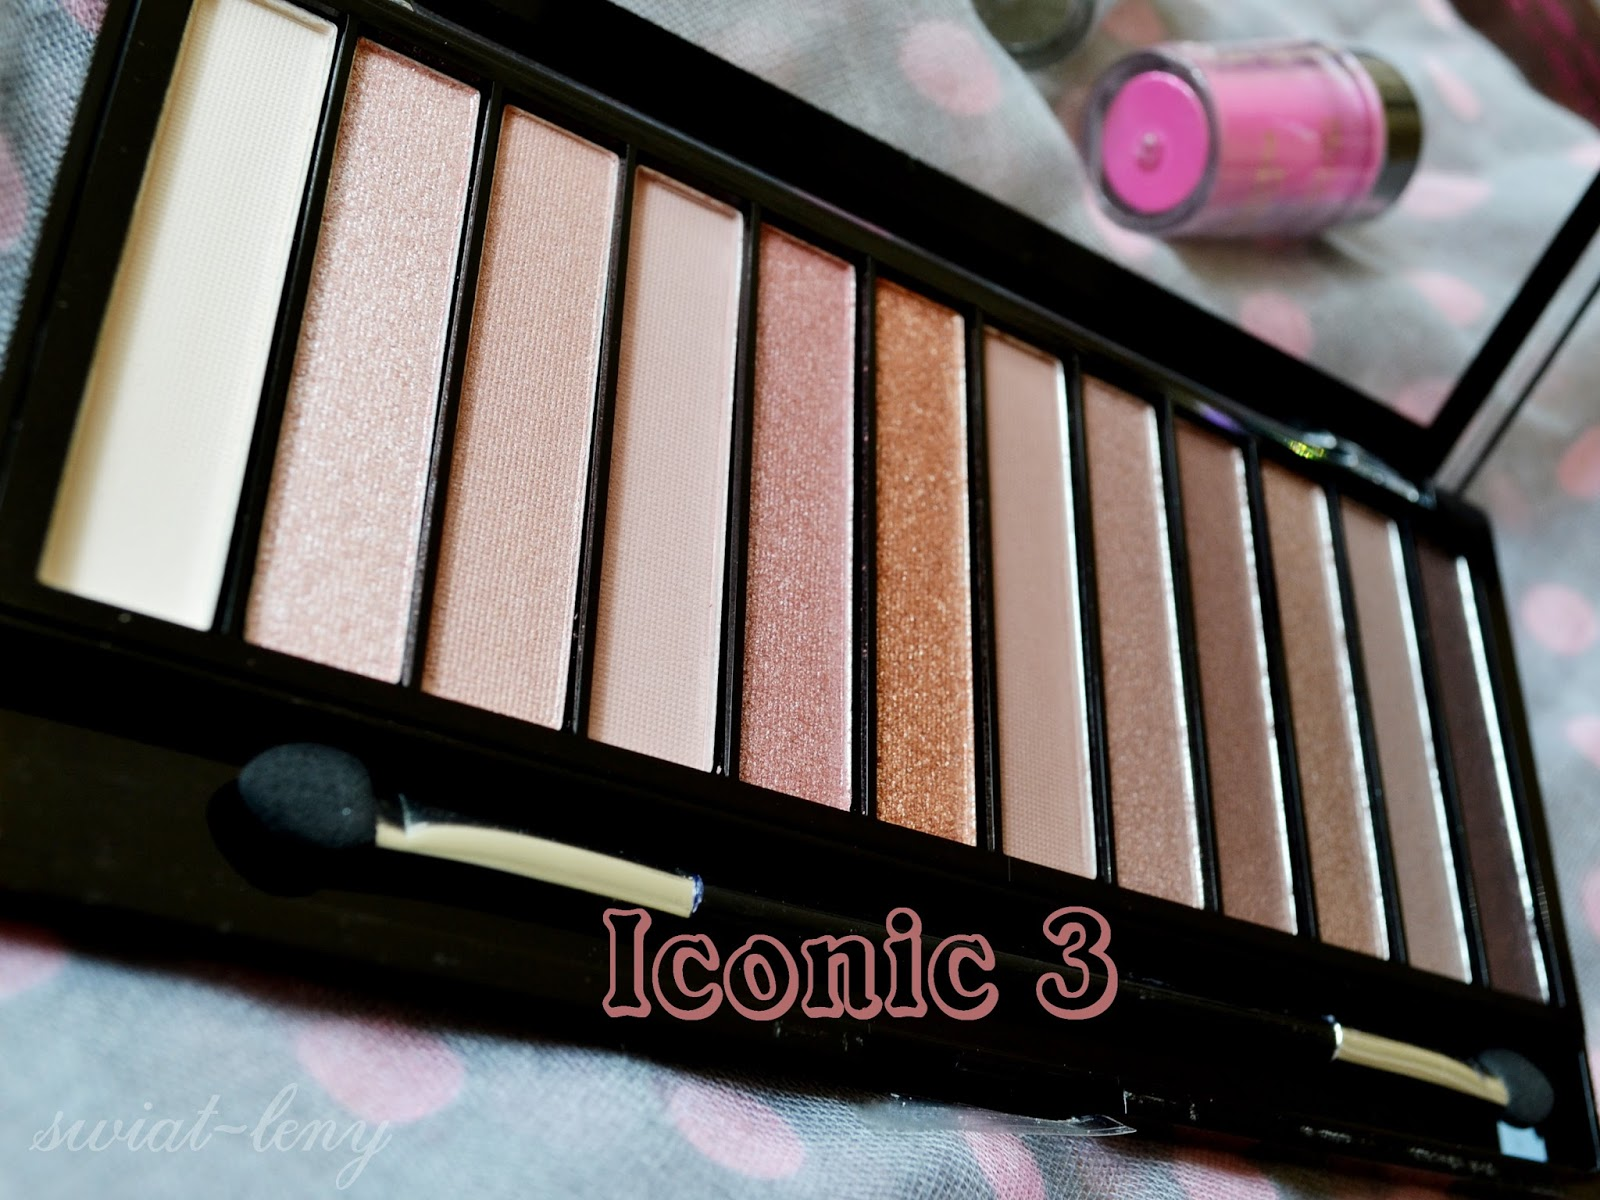 W7 In the nude vs Makeup revolution Iconic 3